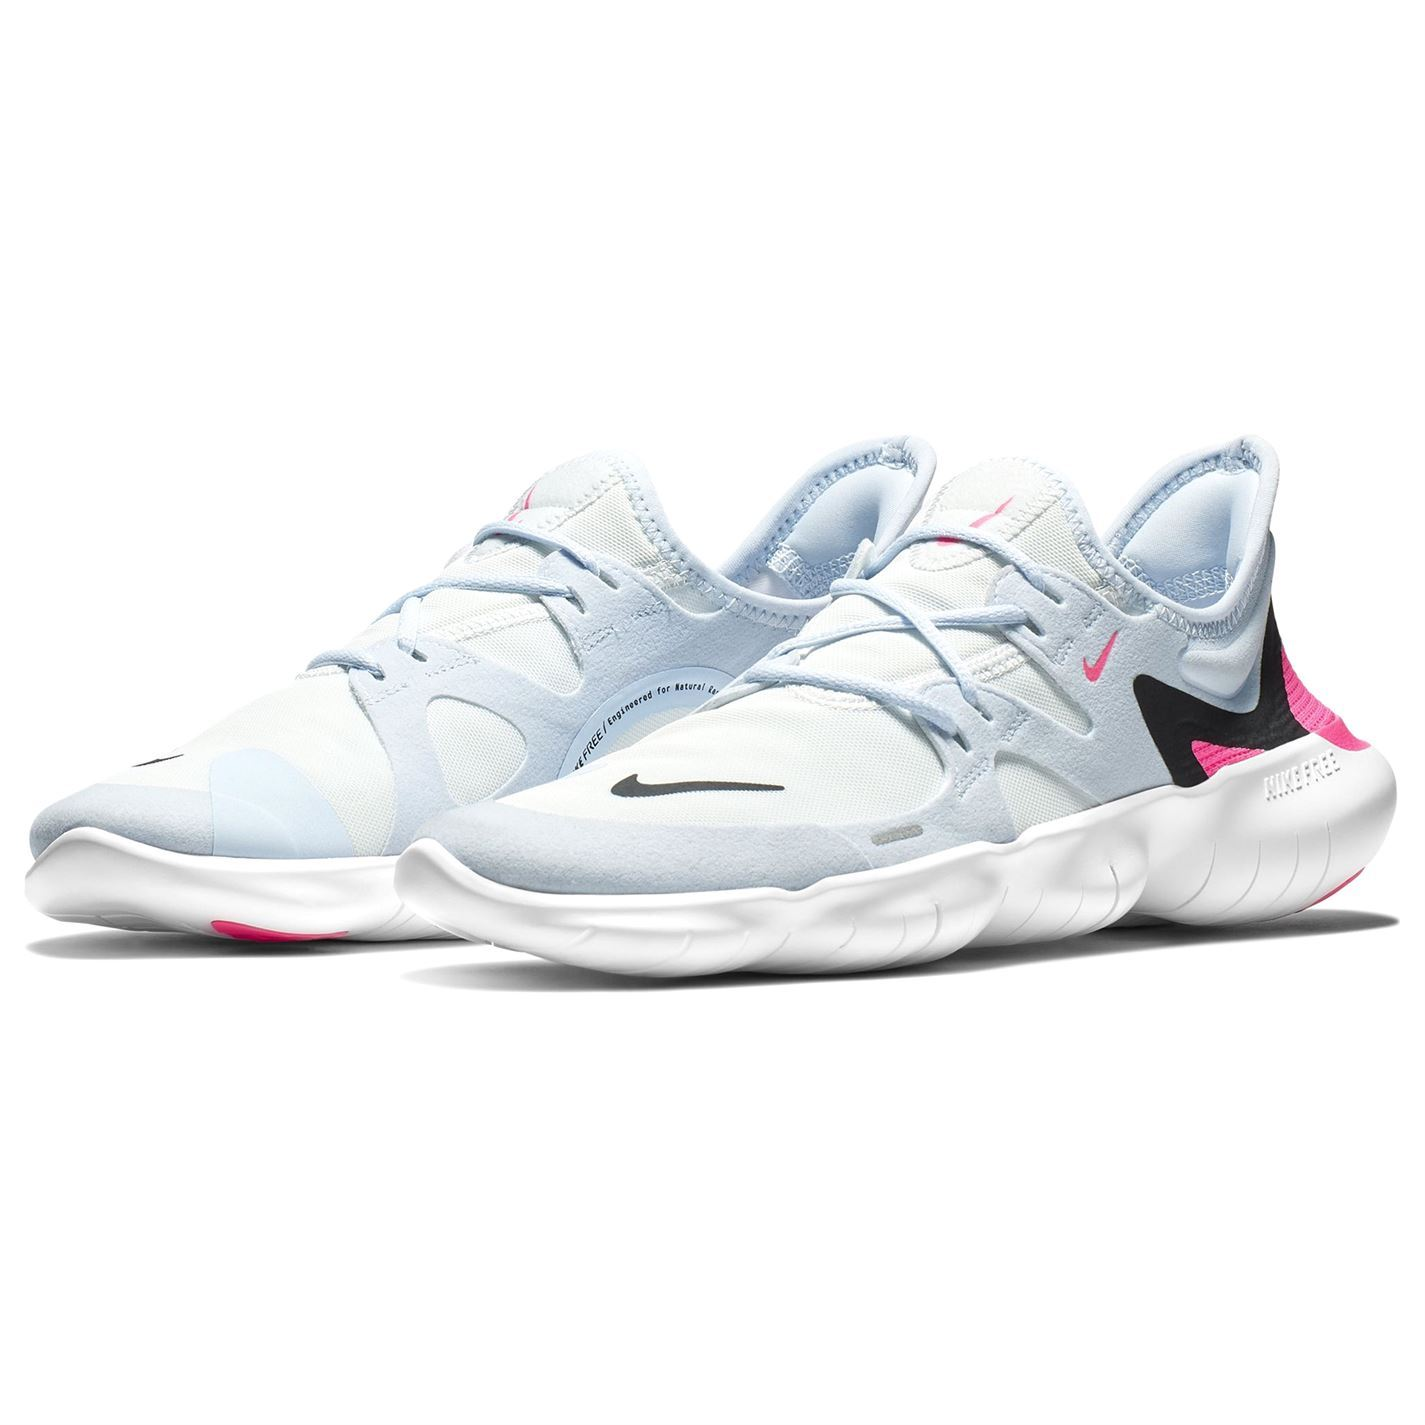 online store a1a85 e2ed8 Details about Nike Free Run 5.0 Womens Running Shoes Trainers Ladies  Athleisure Sneakers